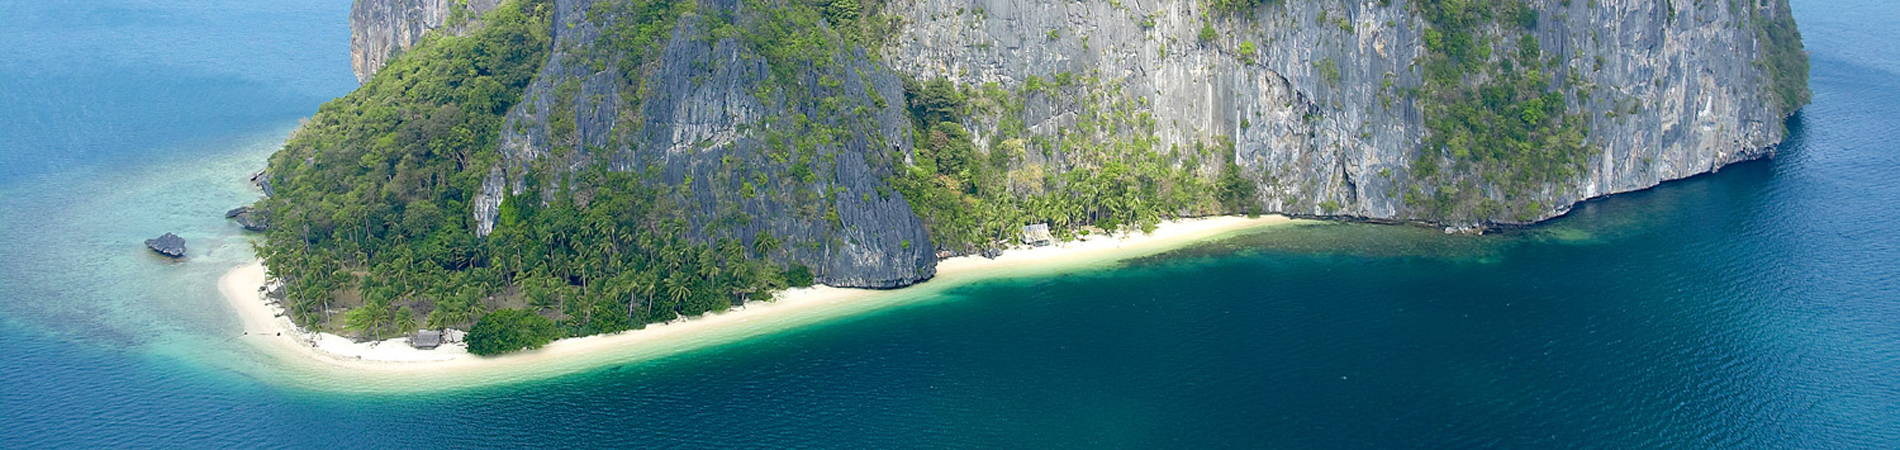 Philippines tourism PHI Island in Palawan header